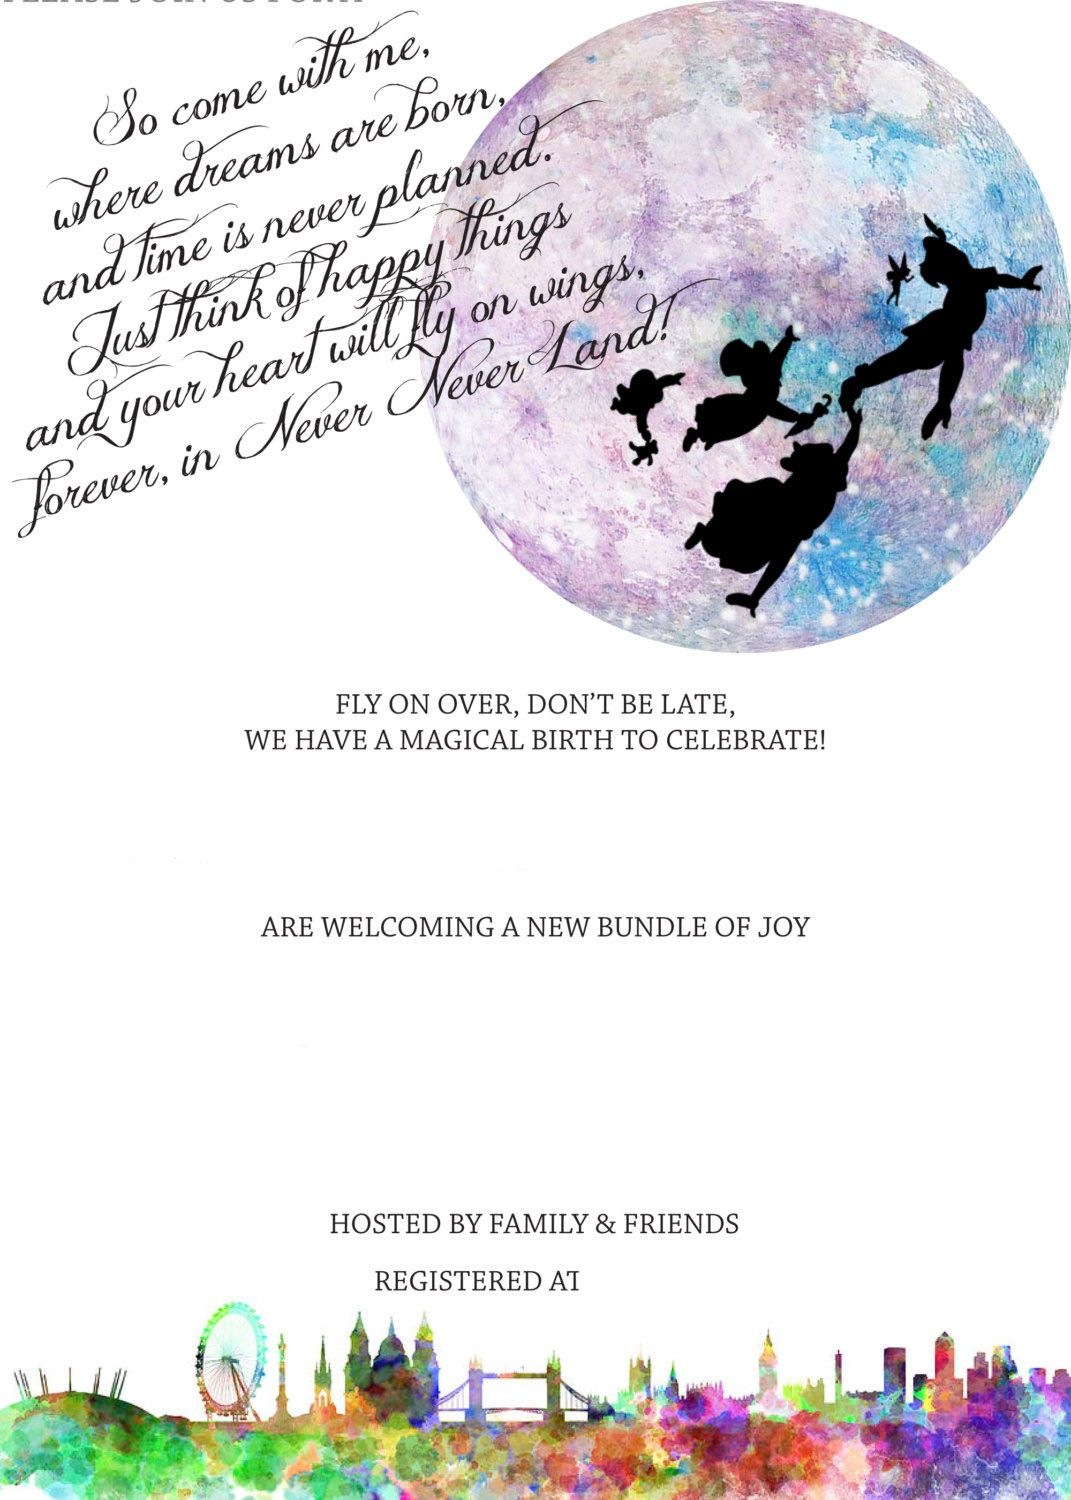 Free Peterpan In Neverland Baby Shower | Free Printable Birthday - Free Printable Tinkerbell Baby Shower Invitations